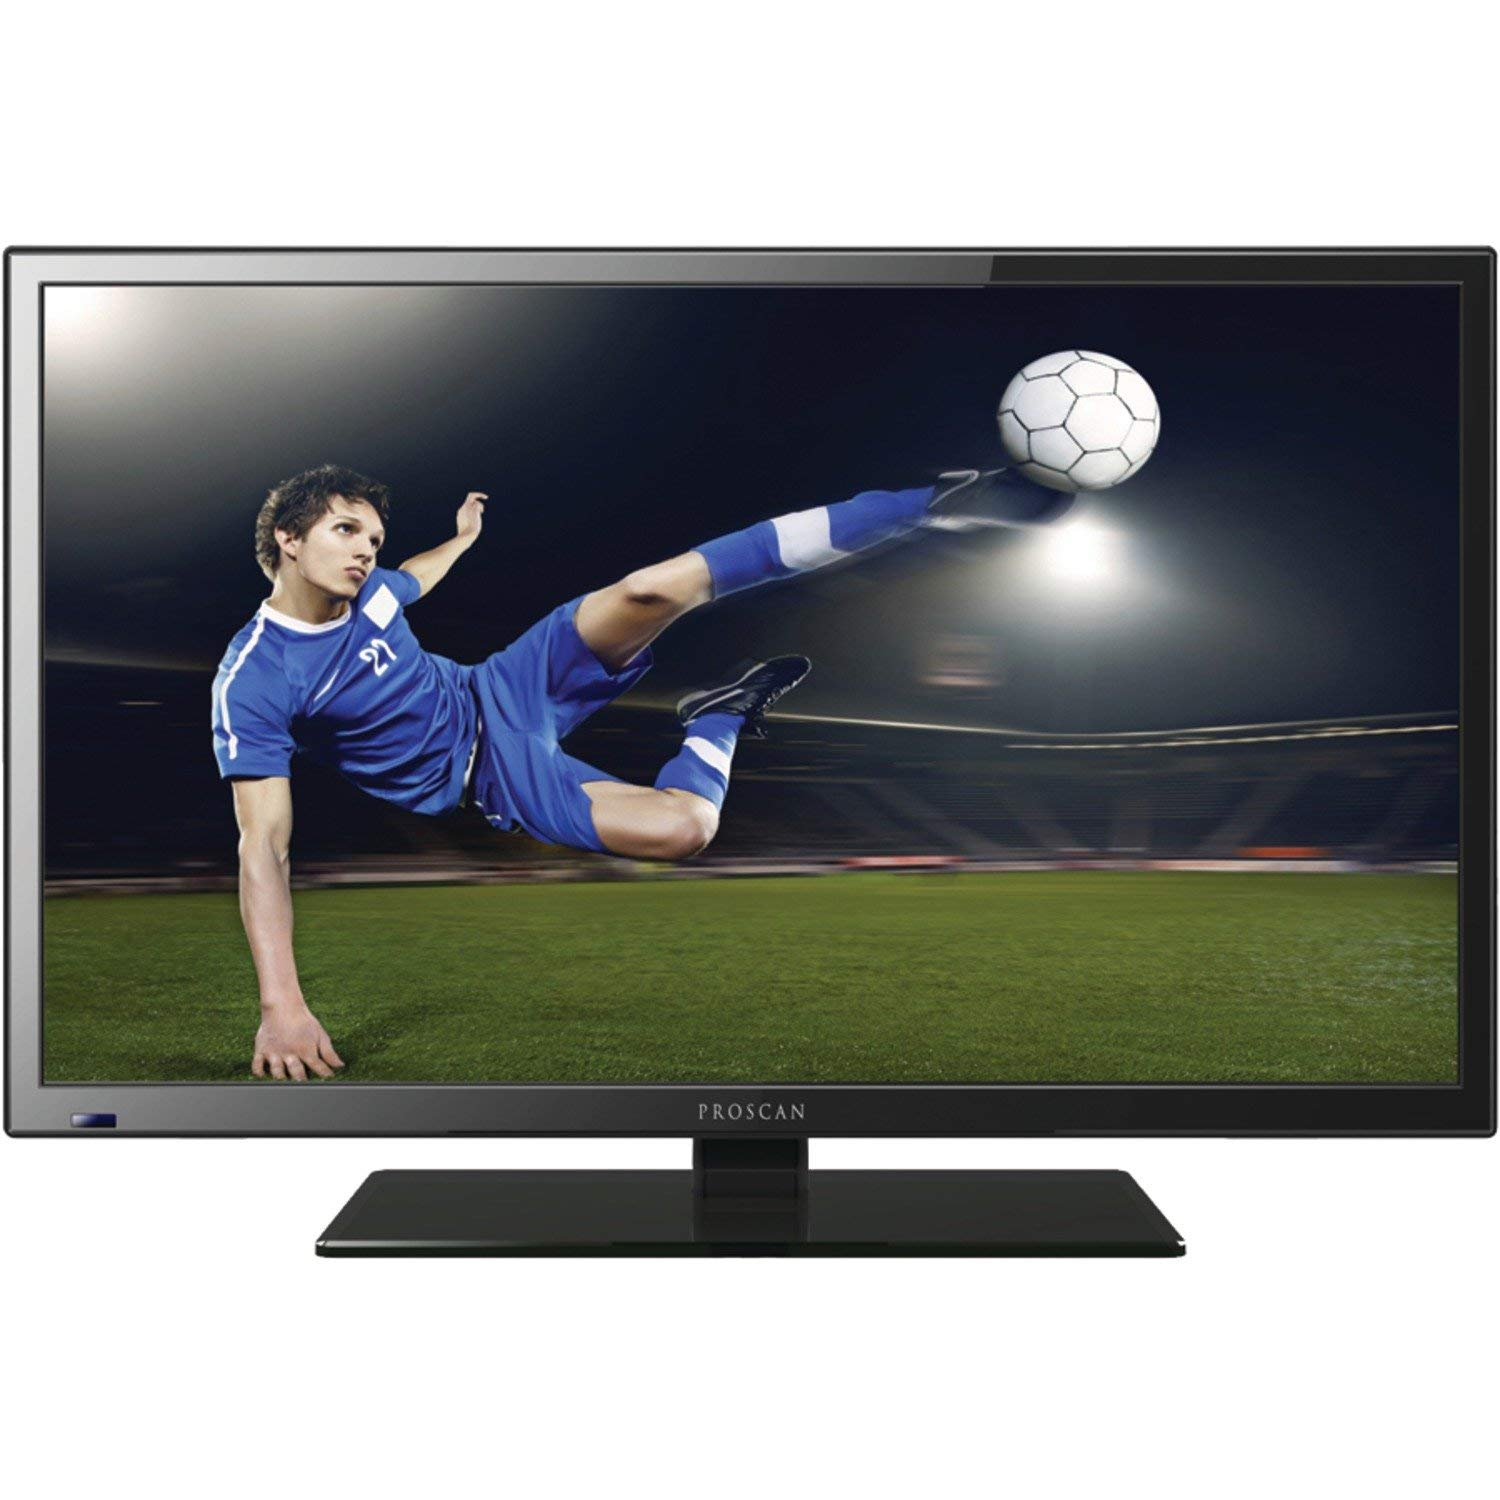 An image of Proscan PLDED3231A-RK 32-Inch HD LED TV | Your TV Set